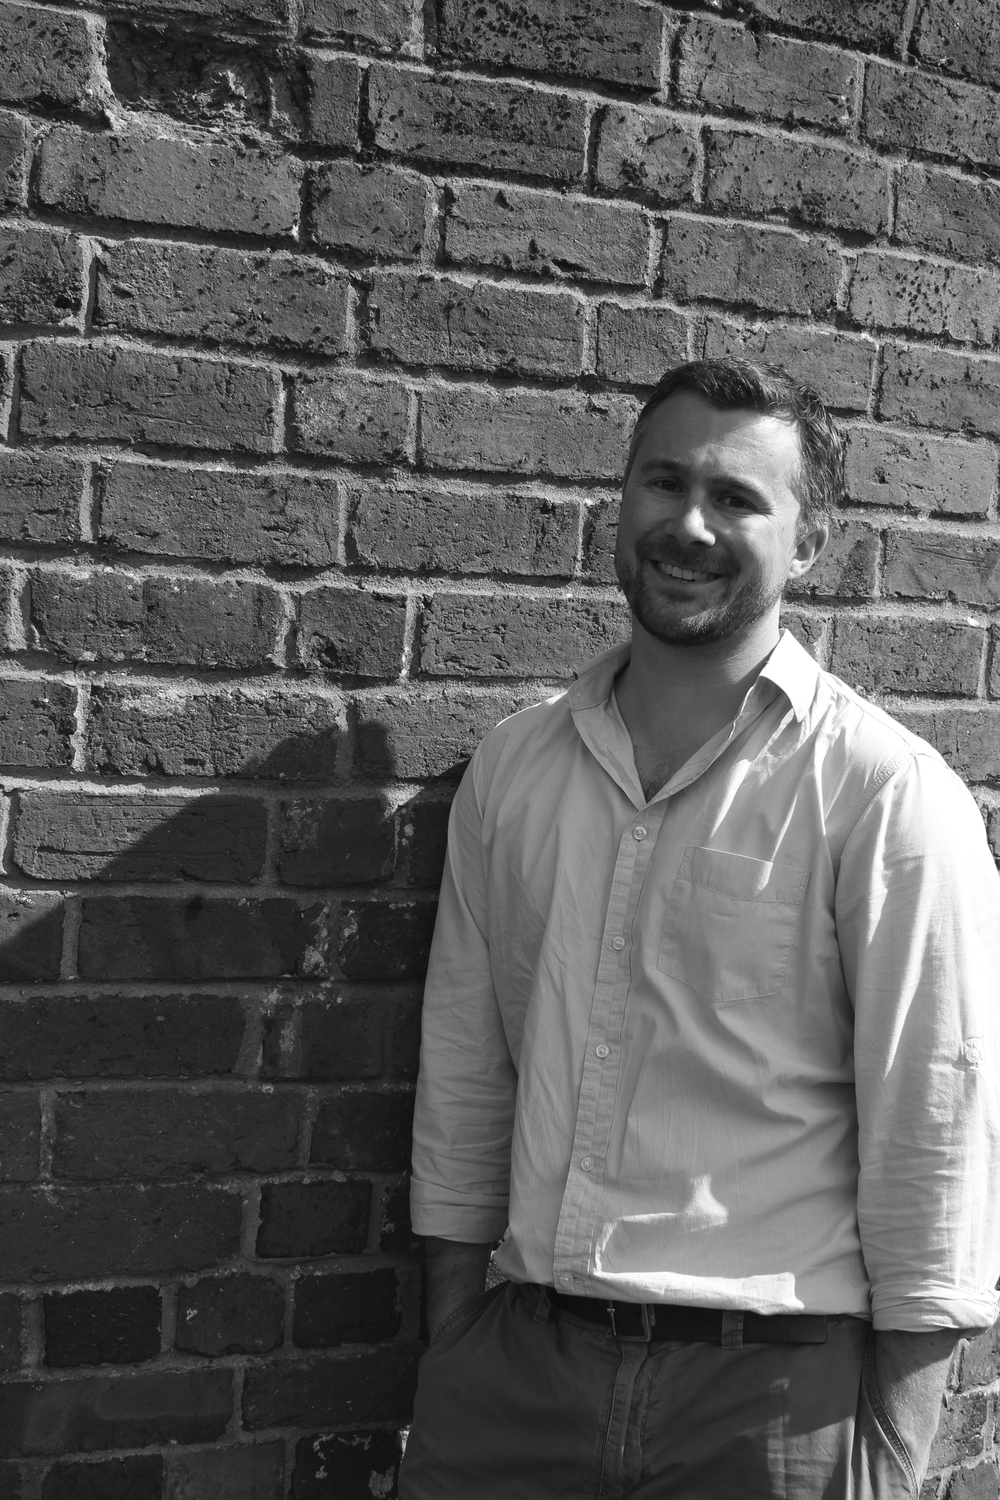 Birmingham architect Ben Mainwood with brick wall